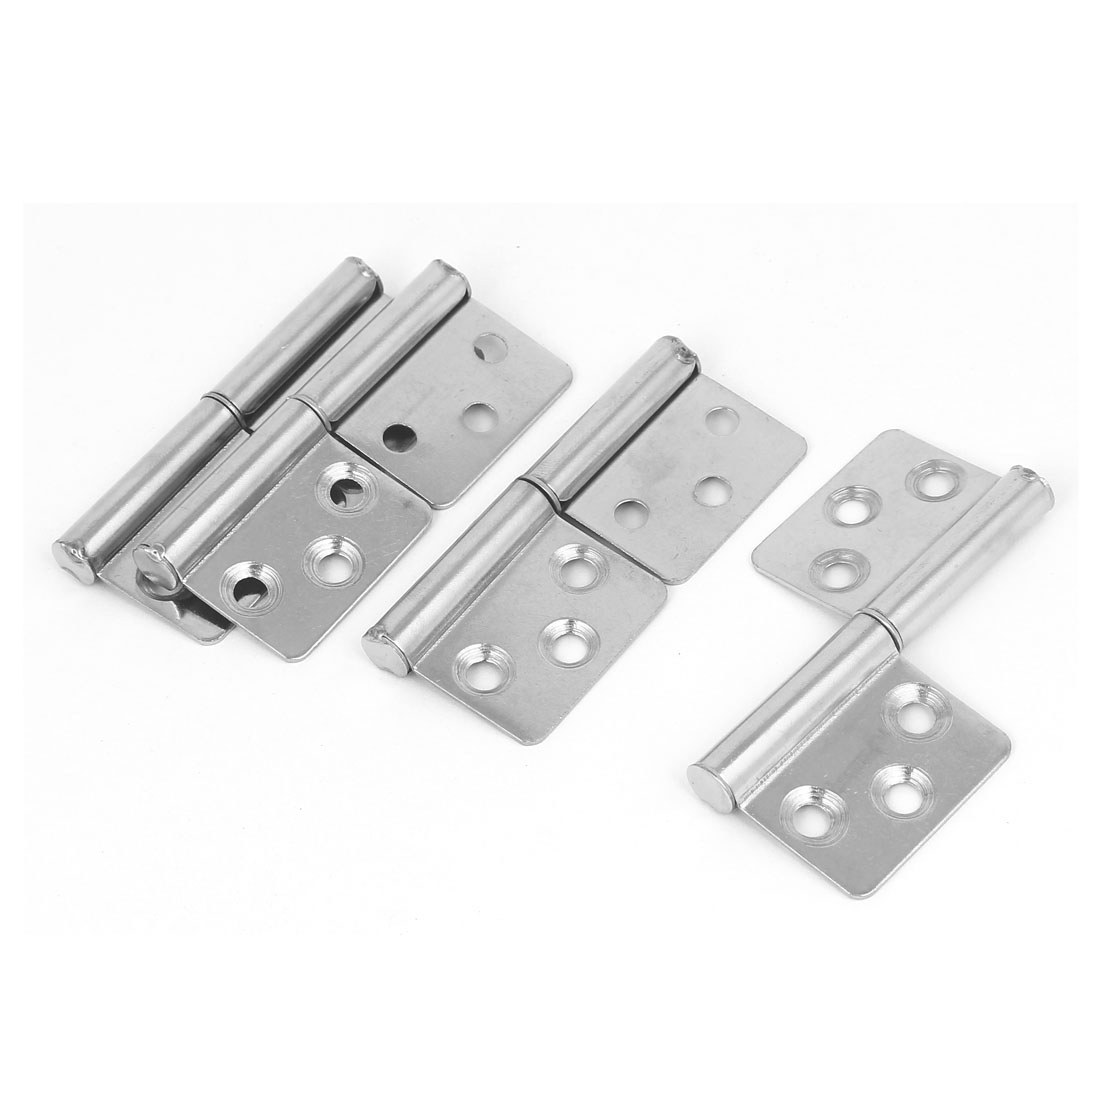 3-inch Long Stainless Steel Two Leaves Flag Hinge 4pcs for Window Door